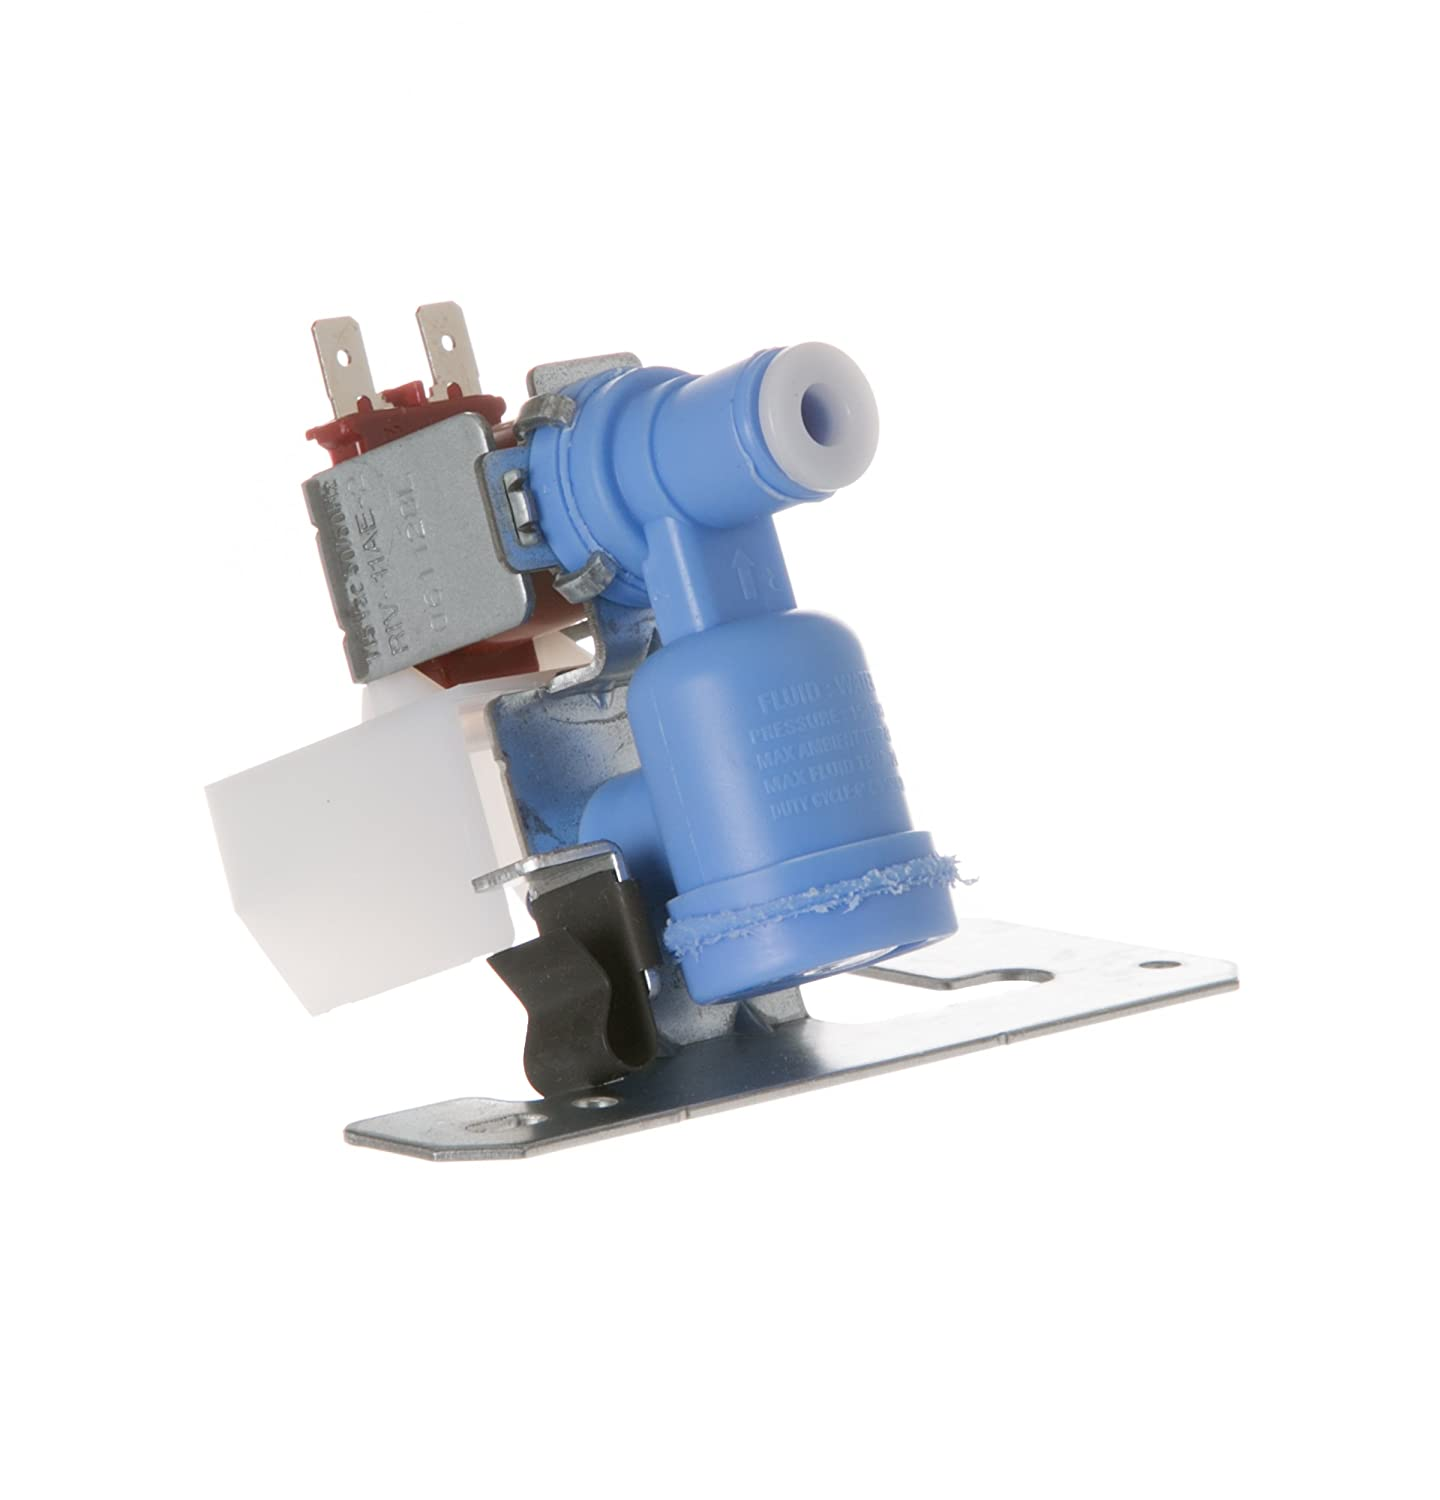 Supco WV10033 Water Valve Replacement